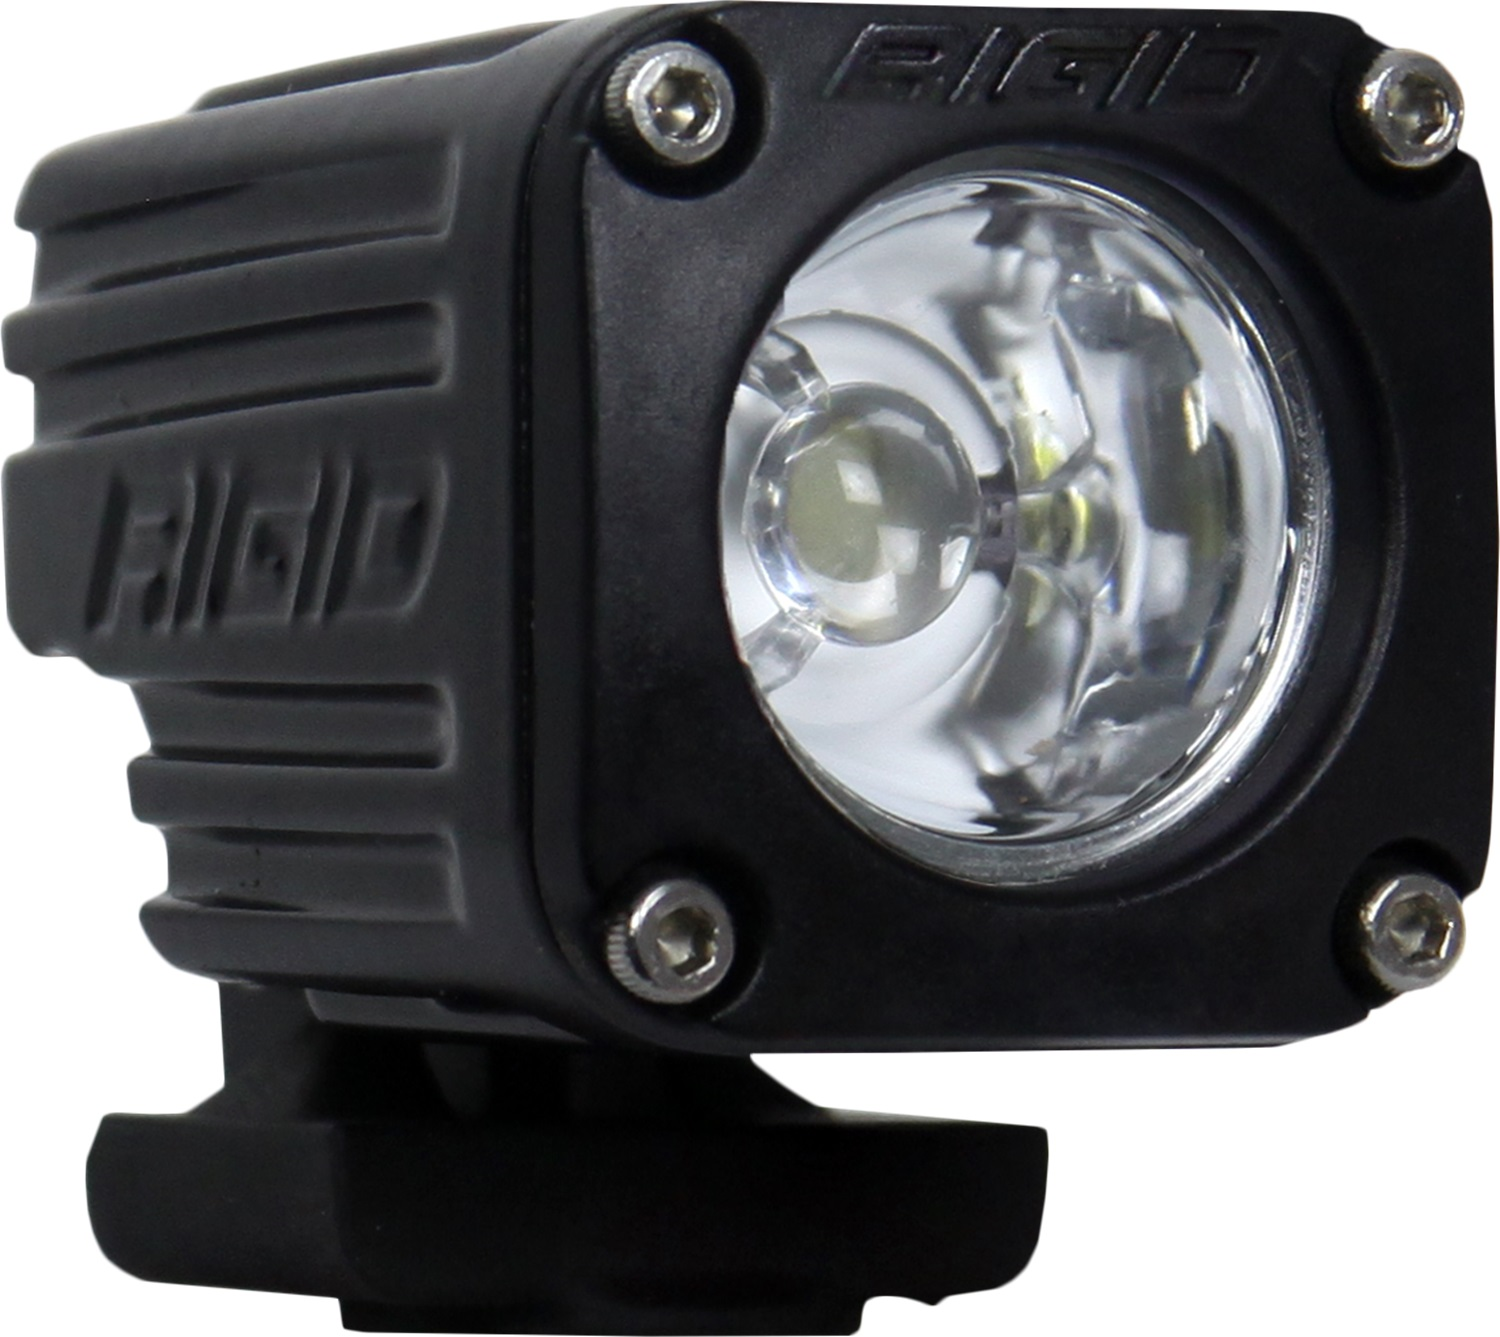 Rigid Industries 20521 Ignite Series Flood Light